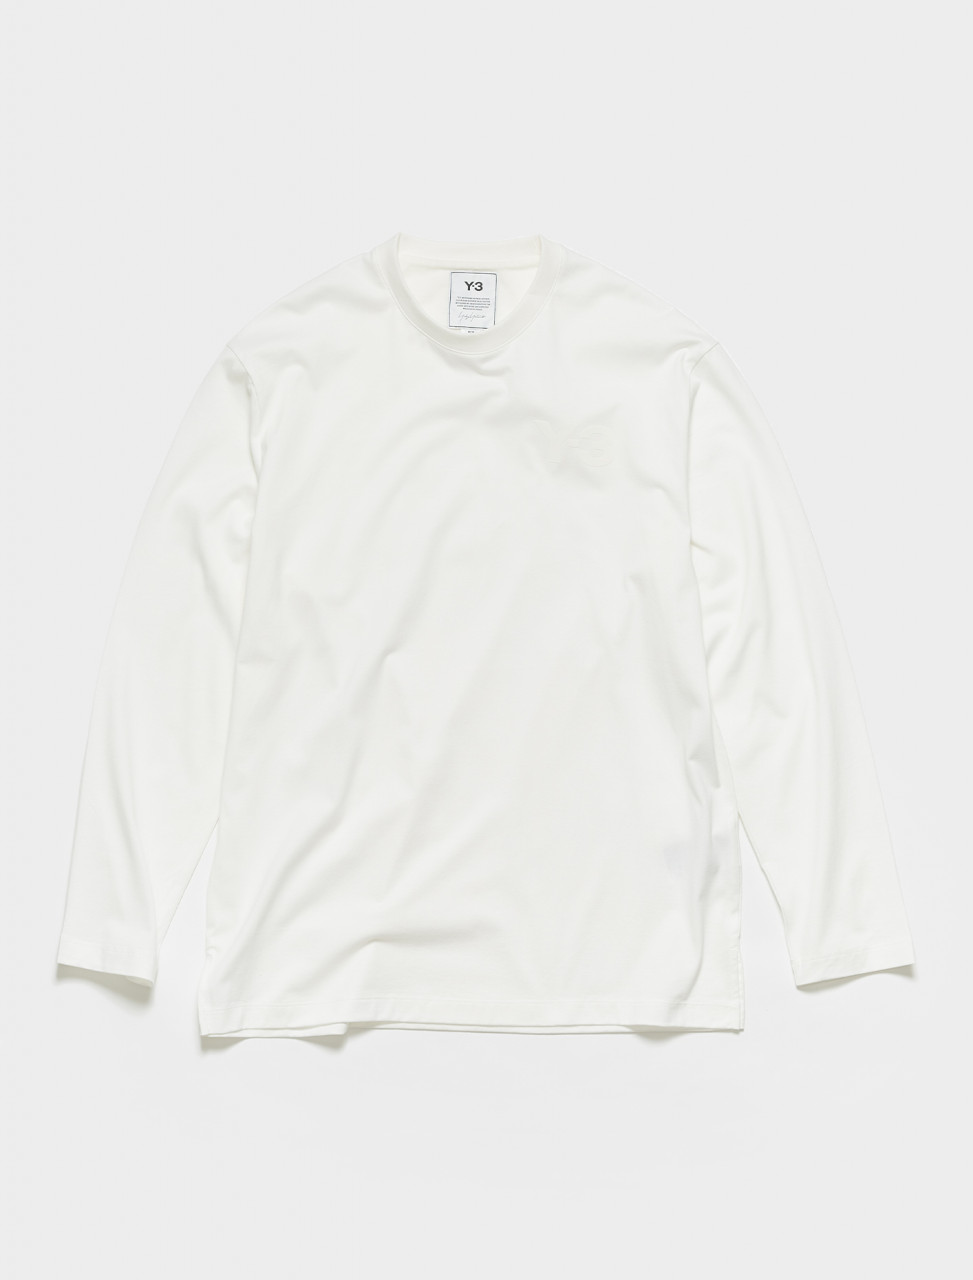 165-FN3362 Y 3 M CLASSIC CHEST LOGO LONG SLEEVE TEE WHITE